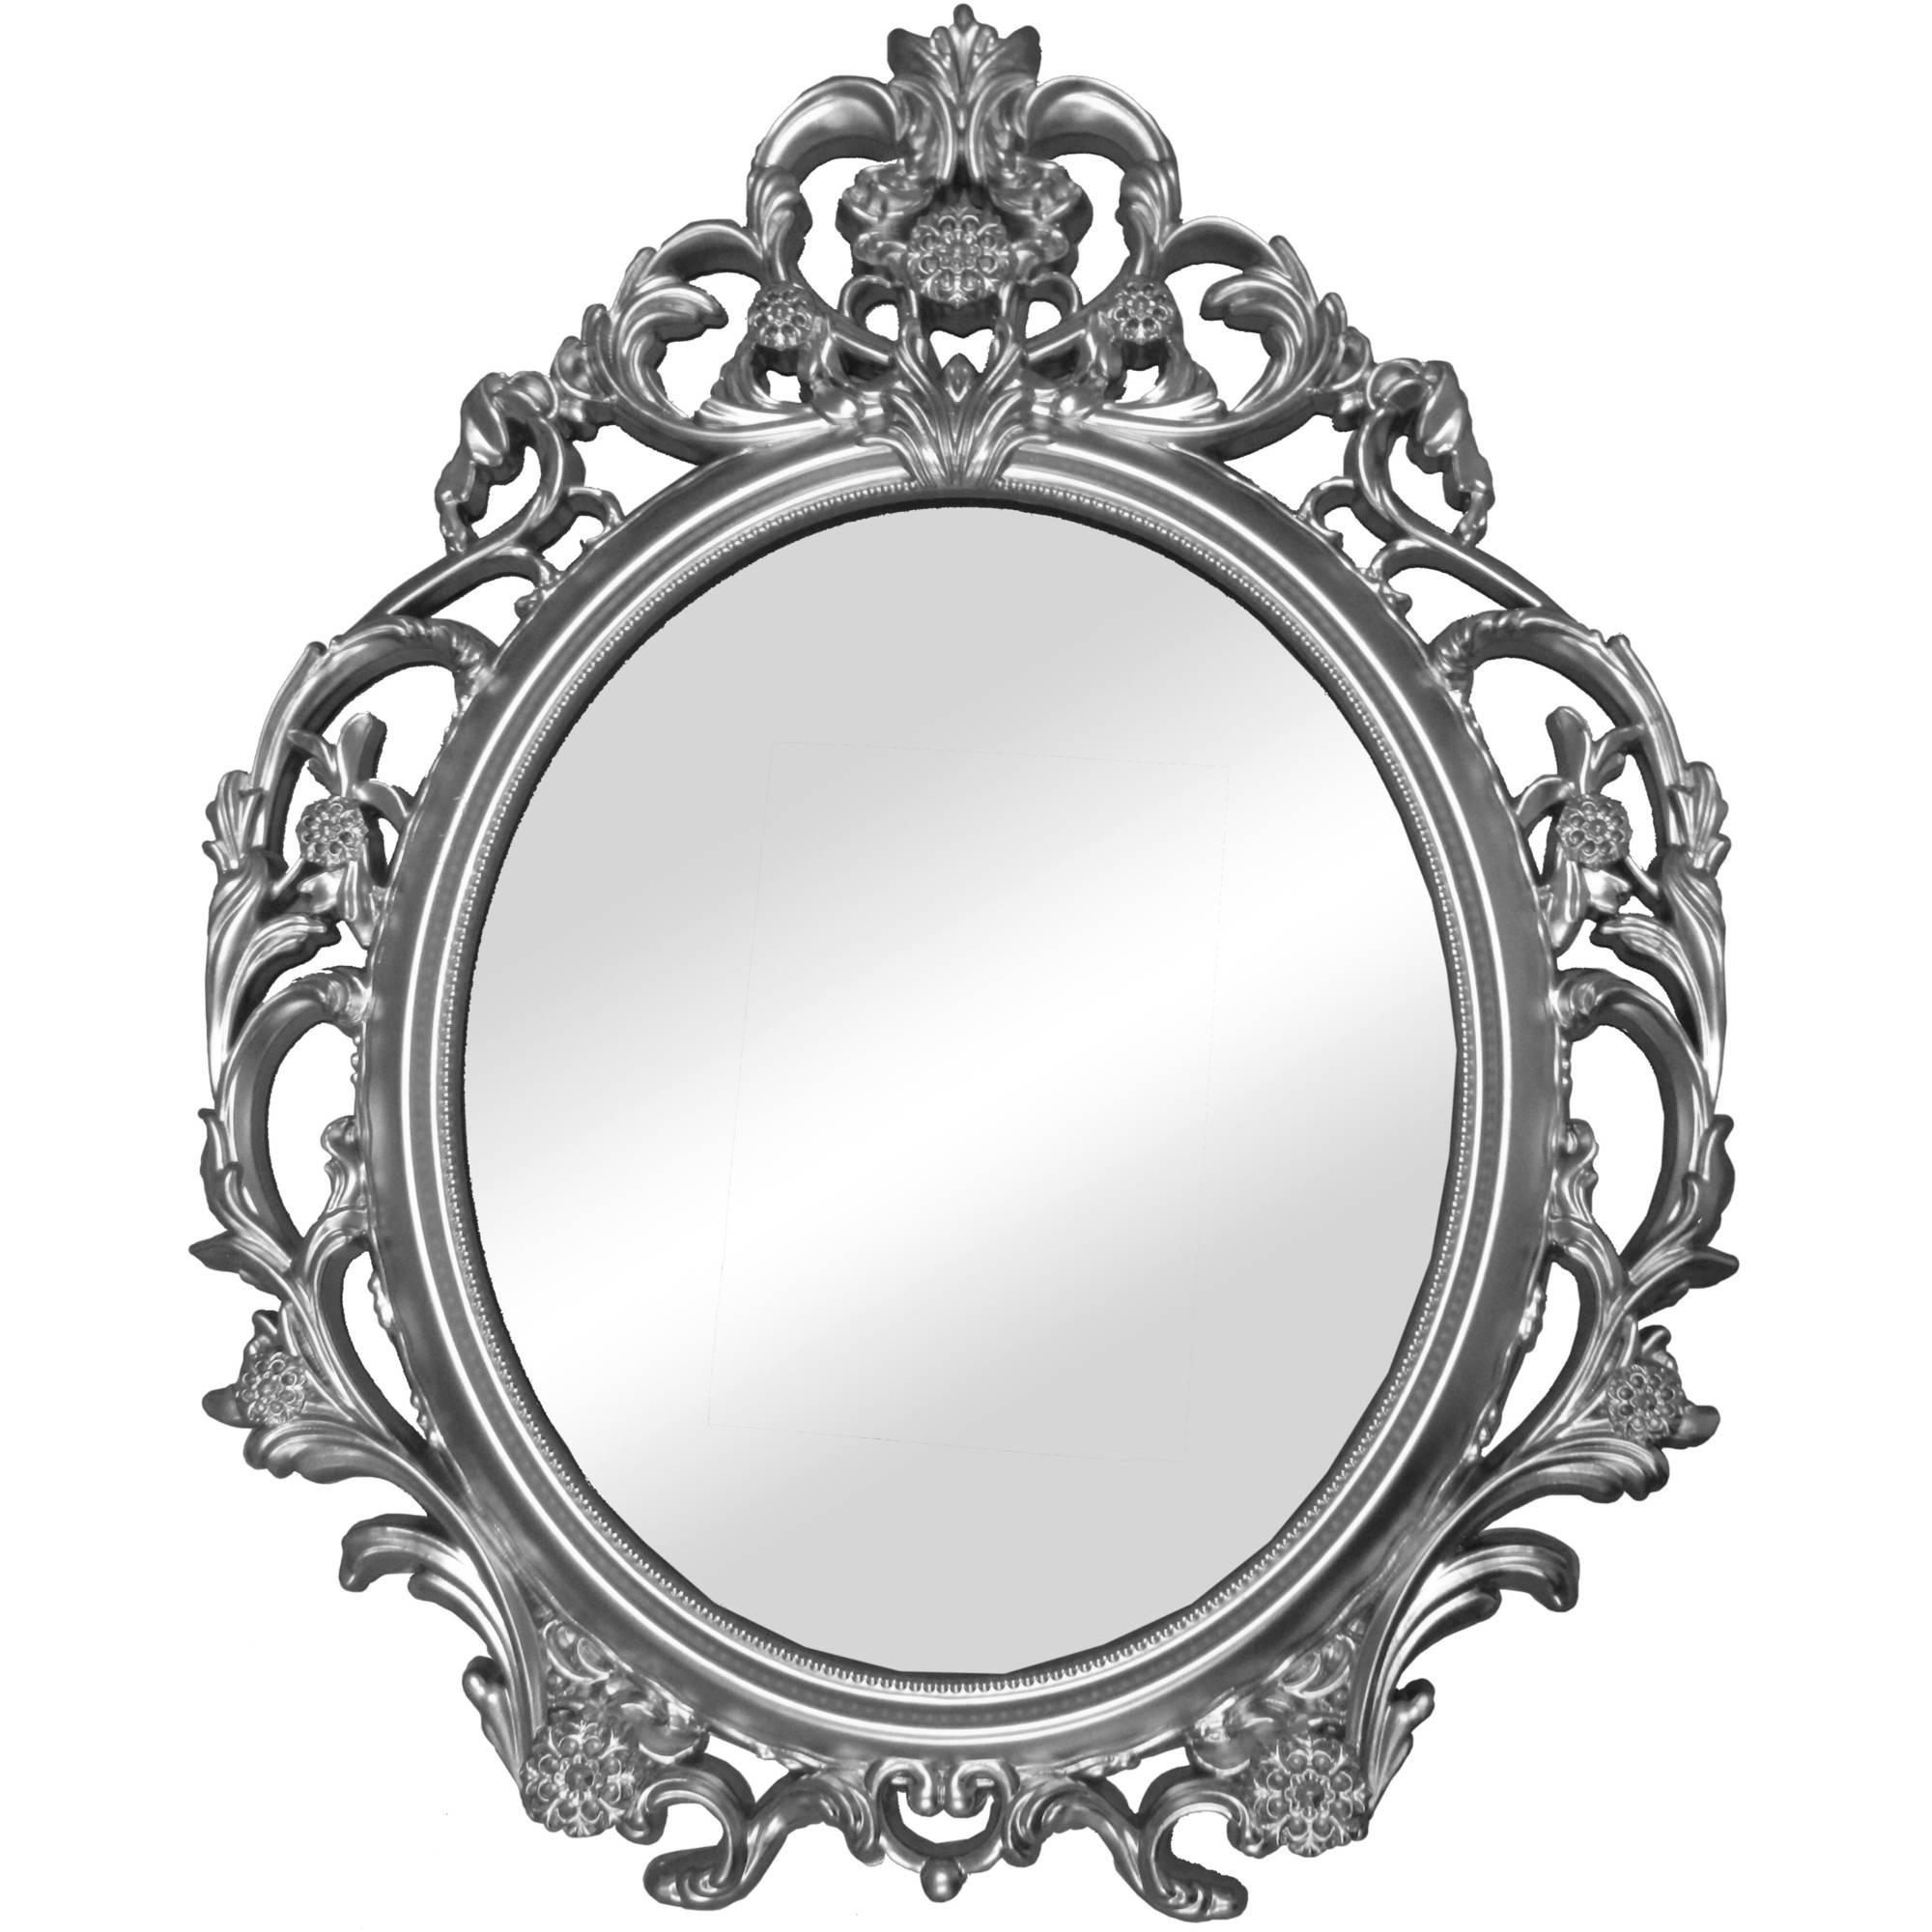 Better Homes And Gardens Baroque Wall Mirror – Walmart With Baroque Mirror Silver (Image 8 of 20)